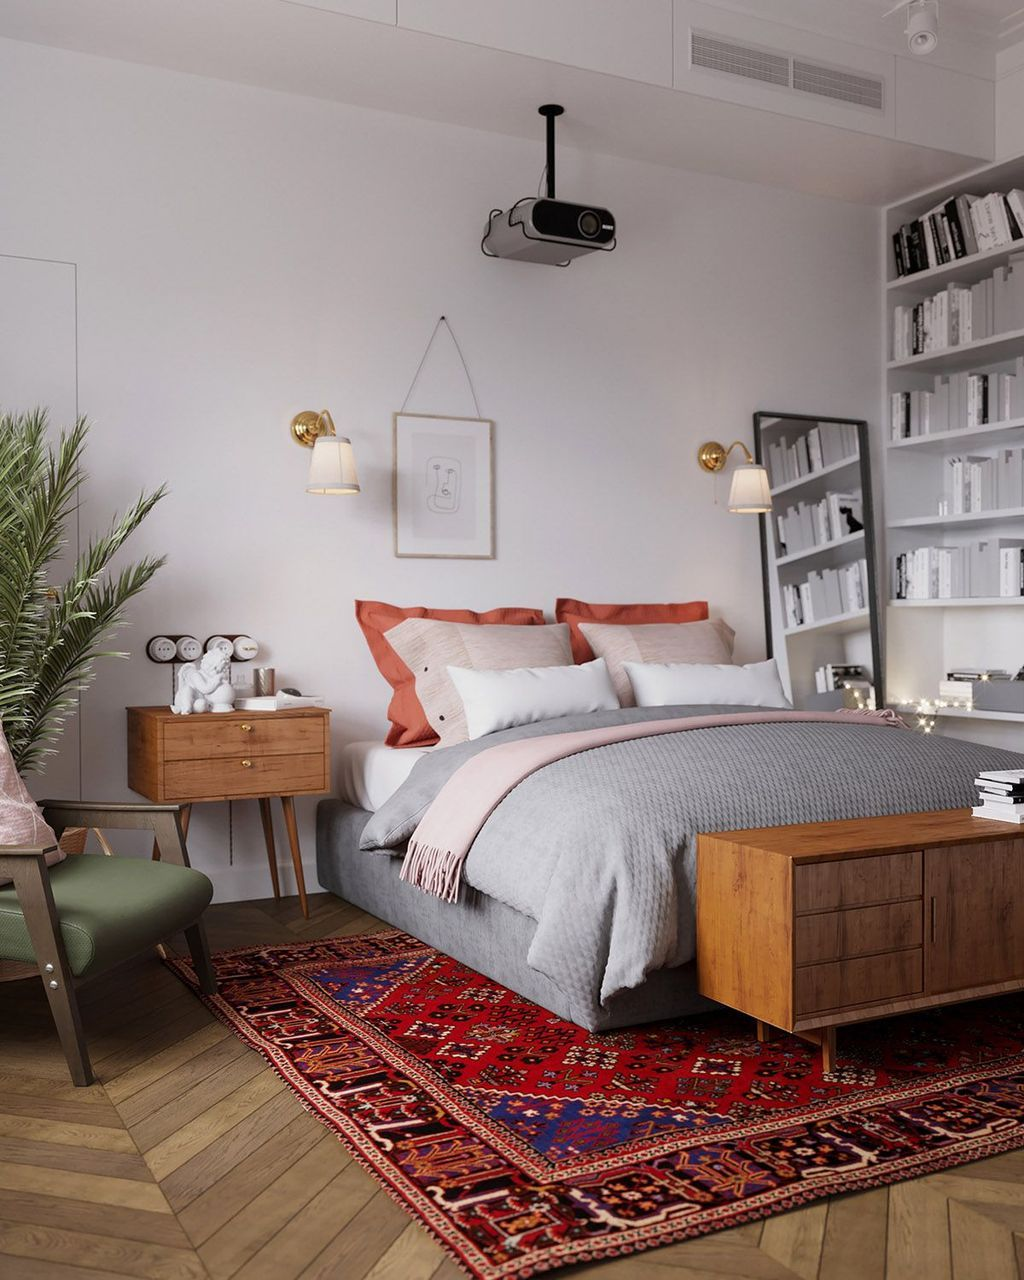 Awesome scandinavian style interior apartment ideas more at https trend homy also rh pinterest